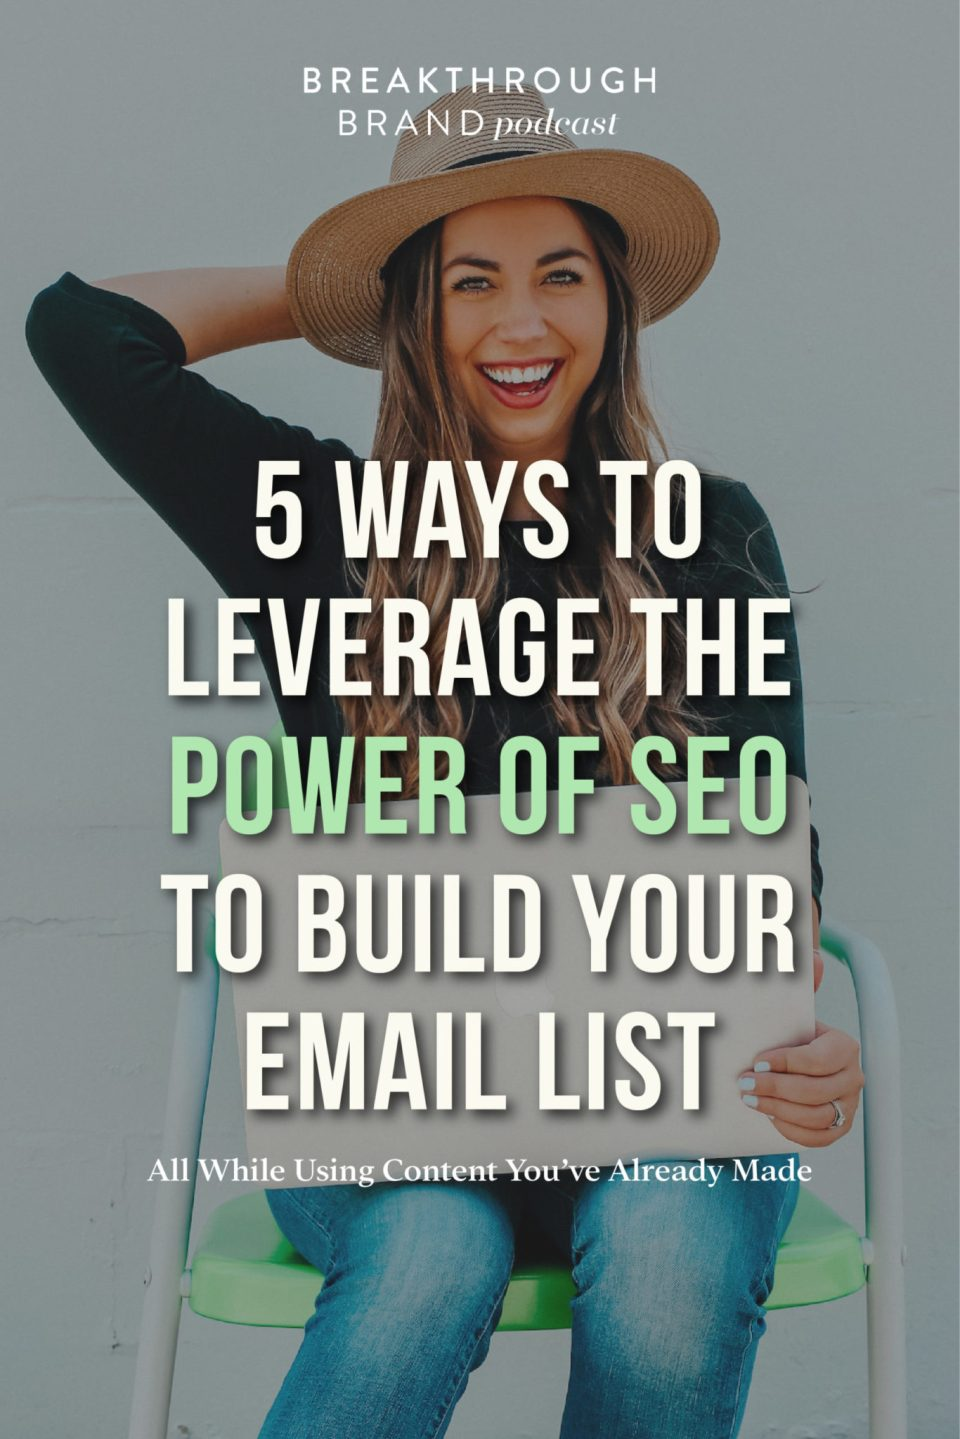 Leverage the power of SEO to build your email list with these 5 tips!